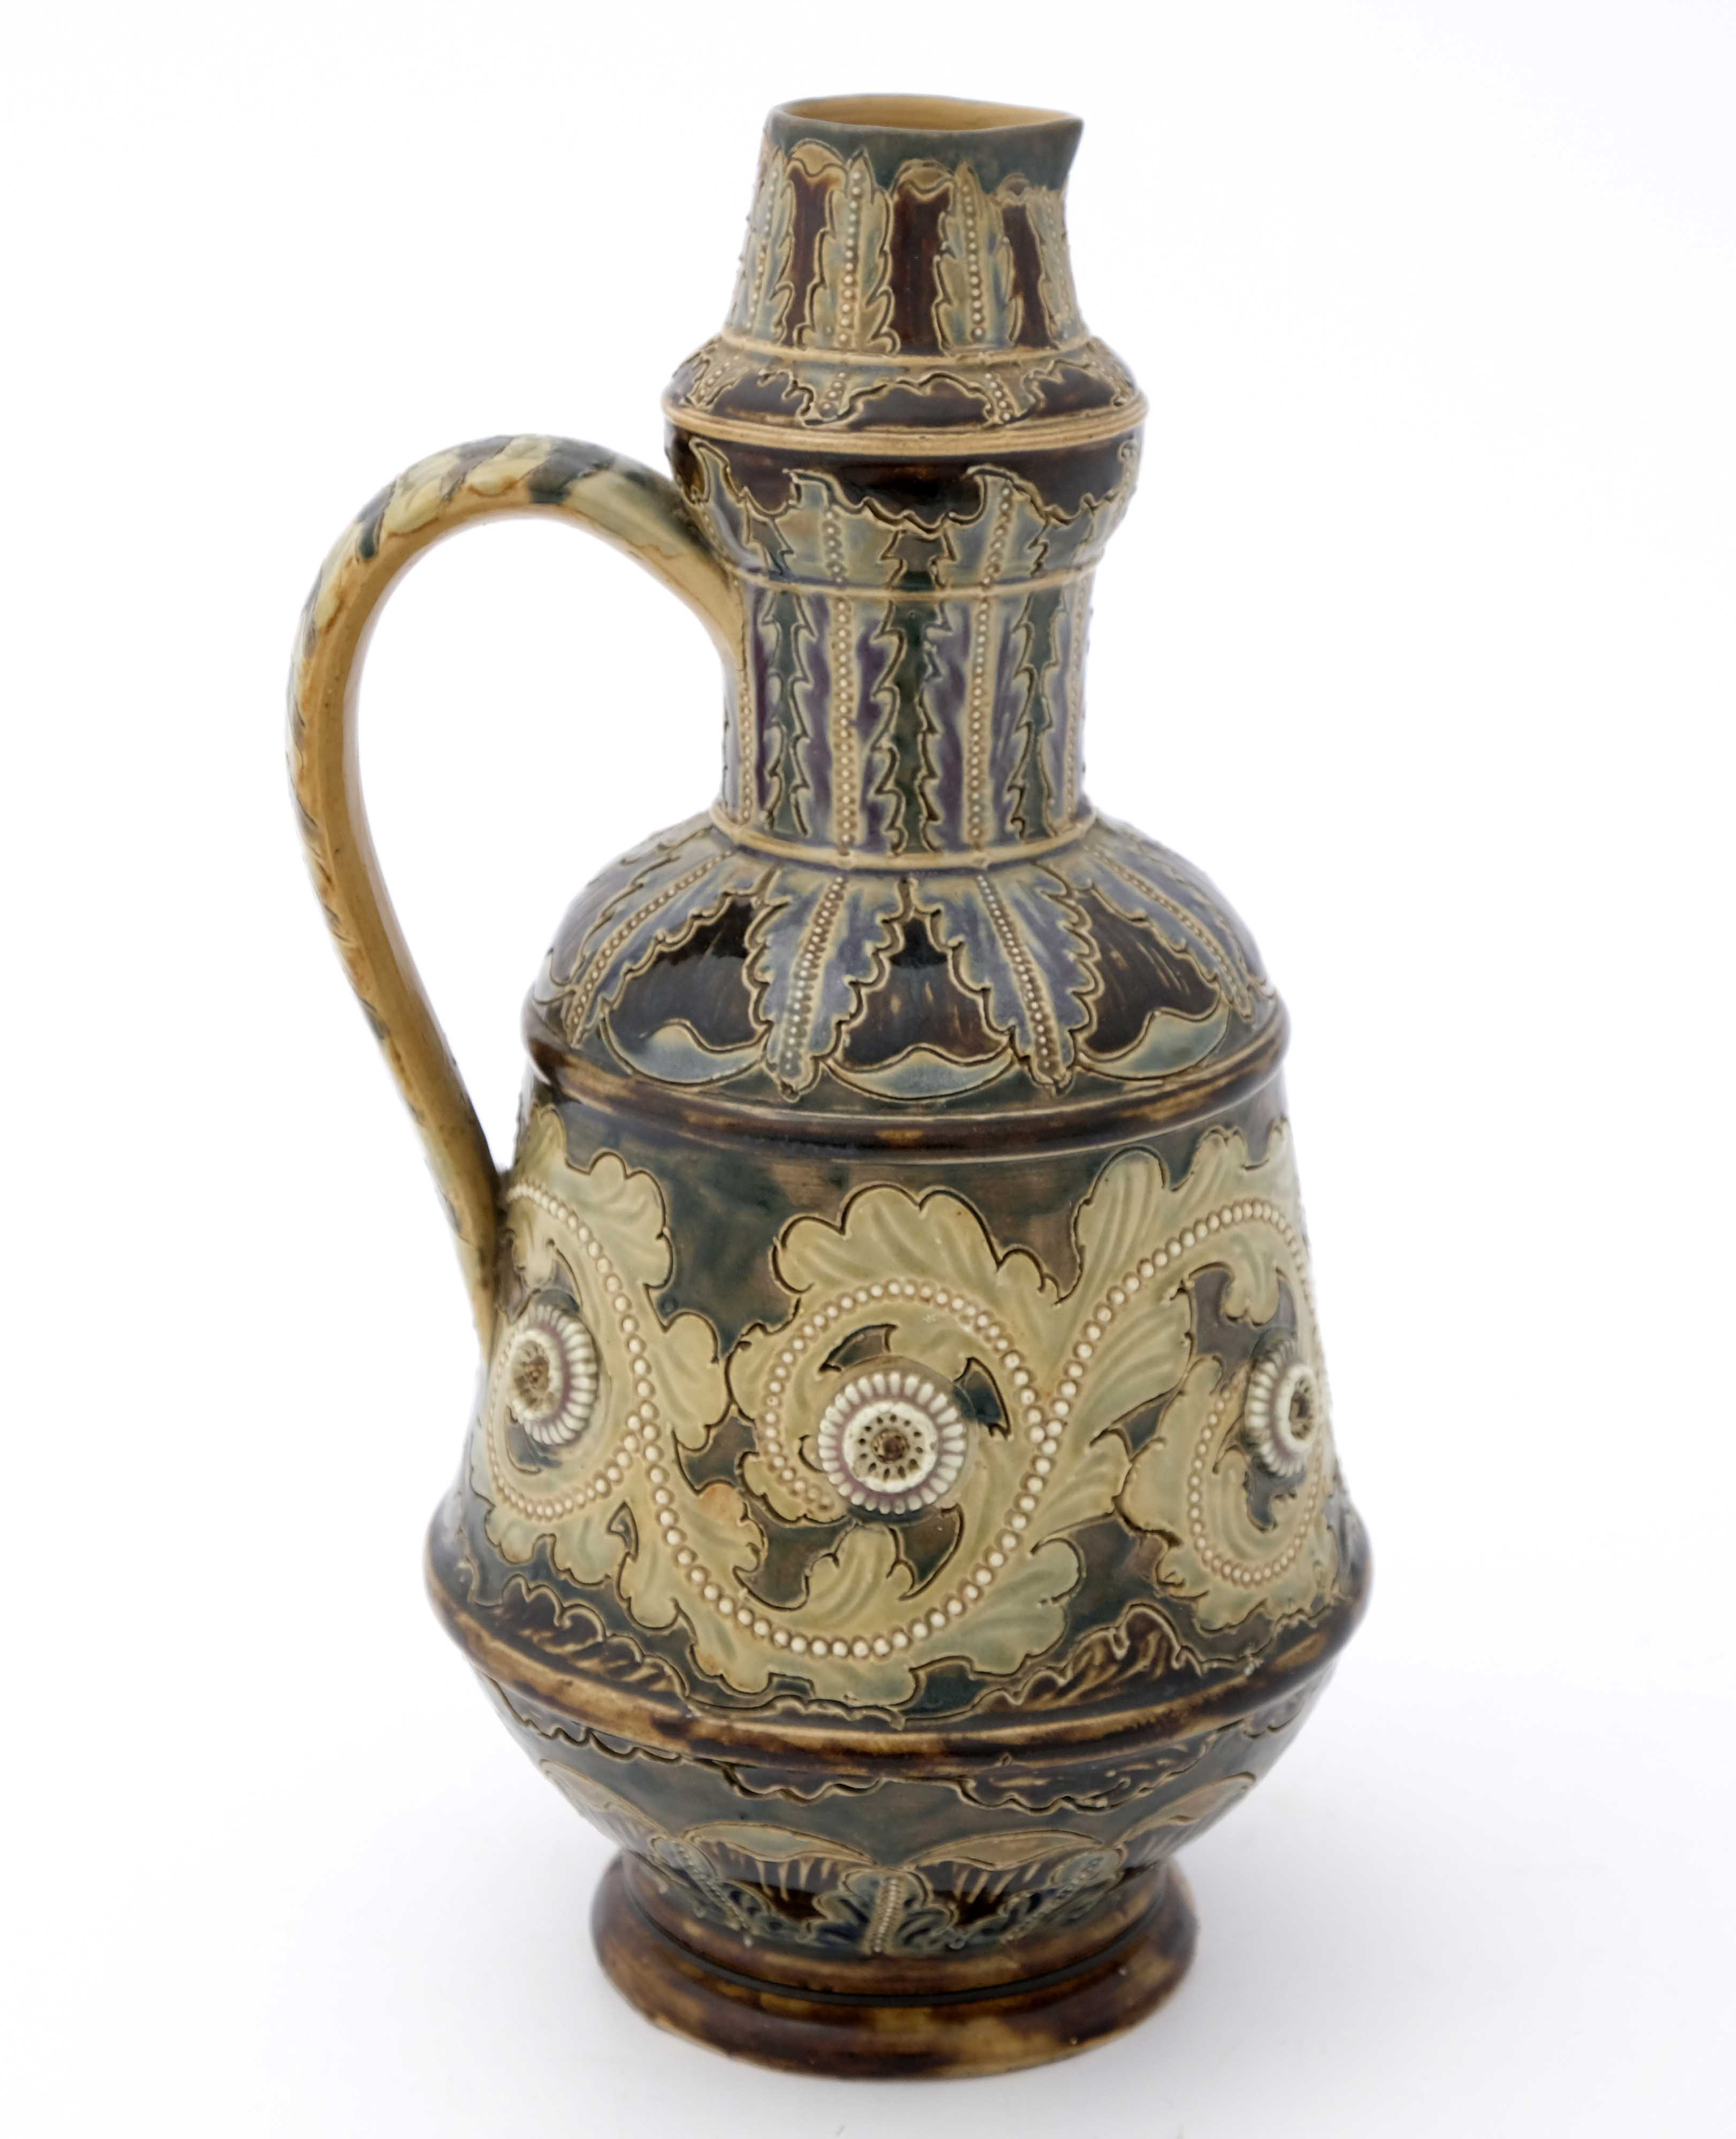 George Tinworth for Doulton Lambeth, a stoneware j